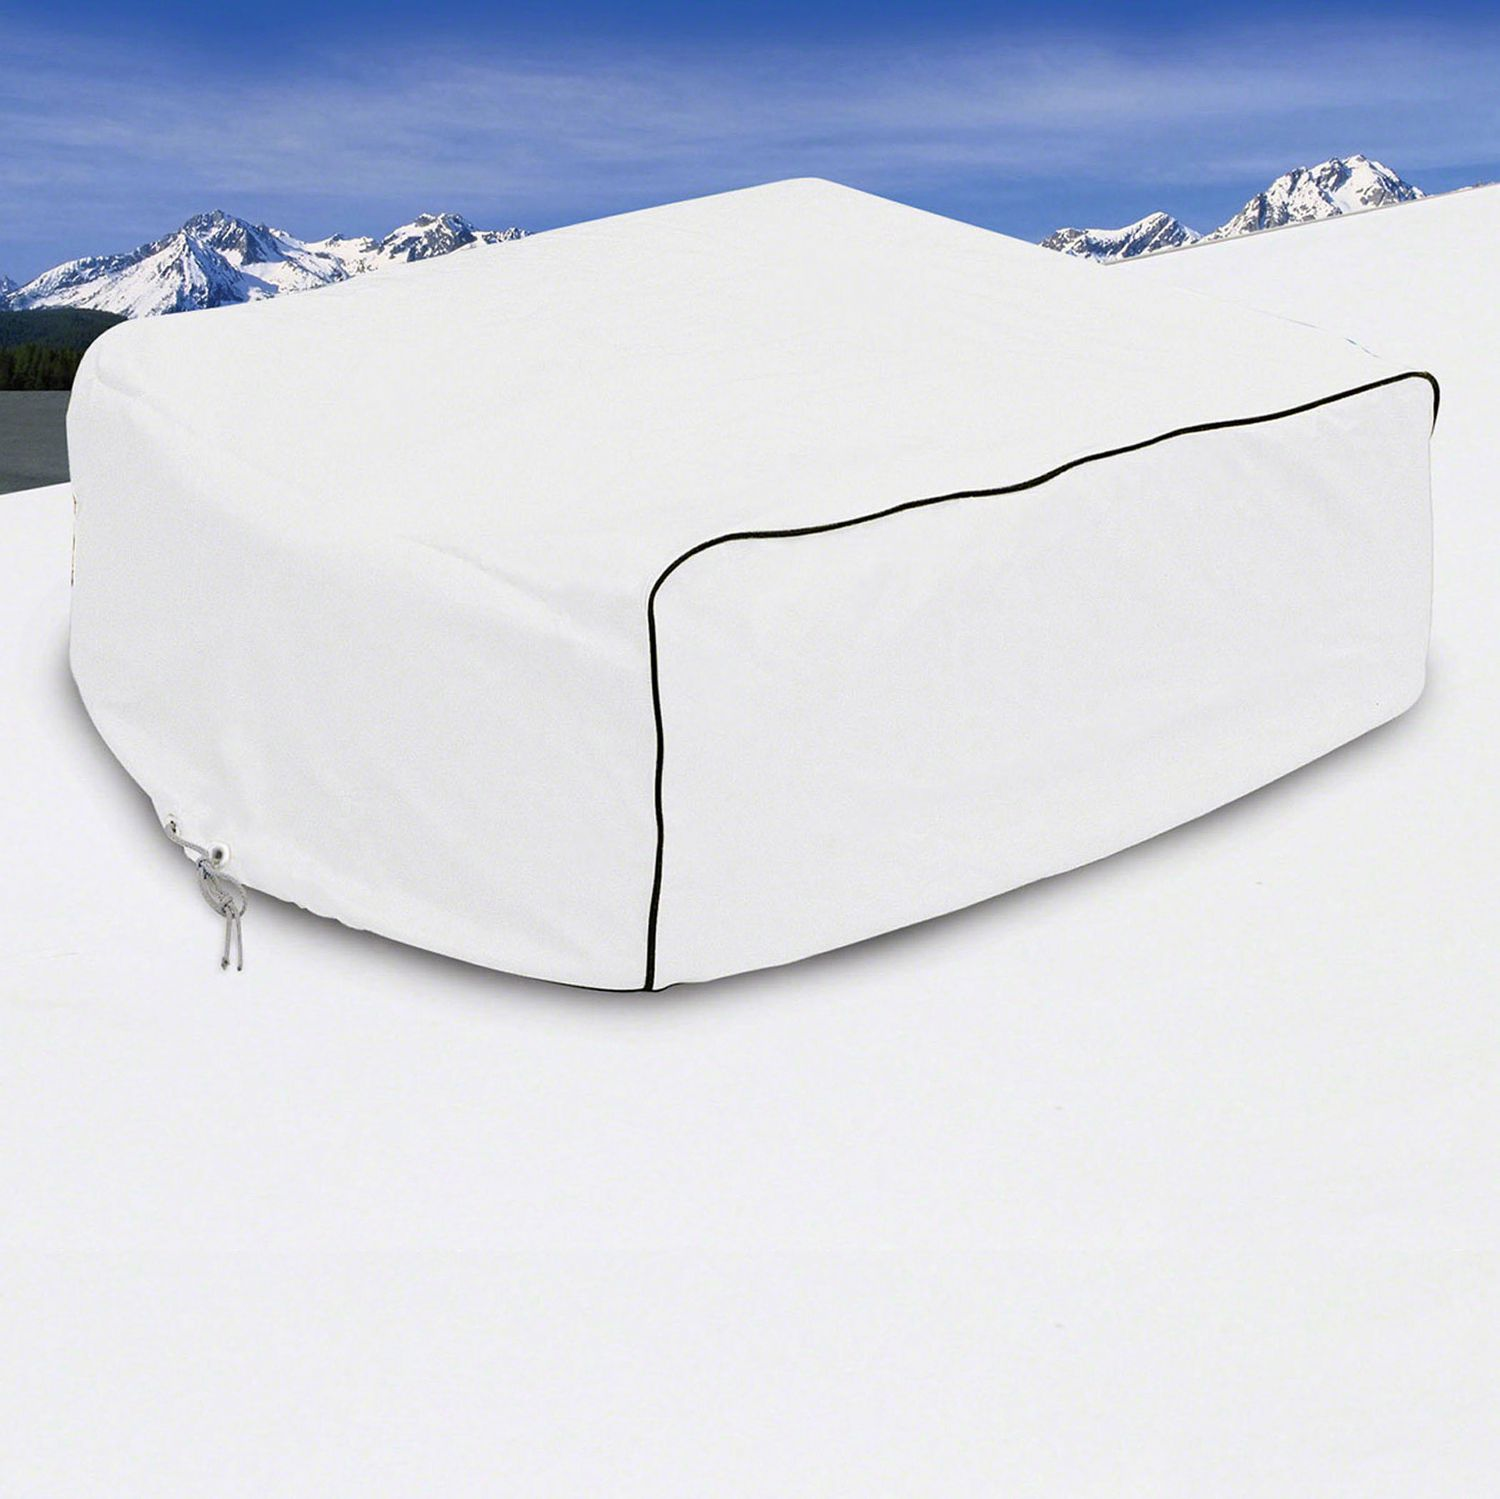 Classic Accessories Rv Ac Cover, Fits Duo-Therm Briskair And Quick Cool